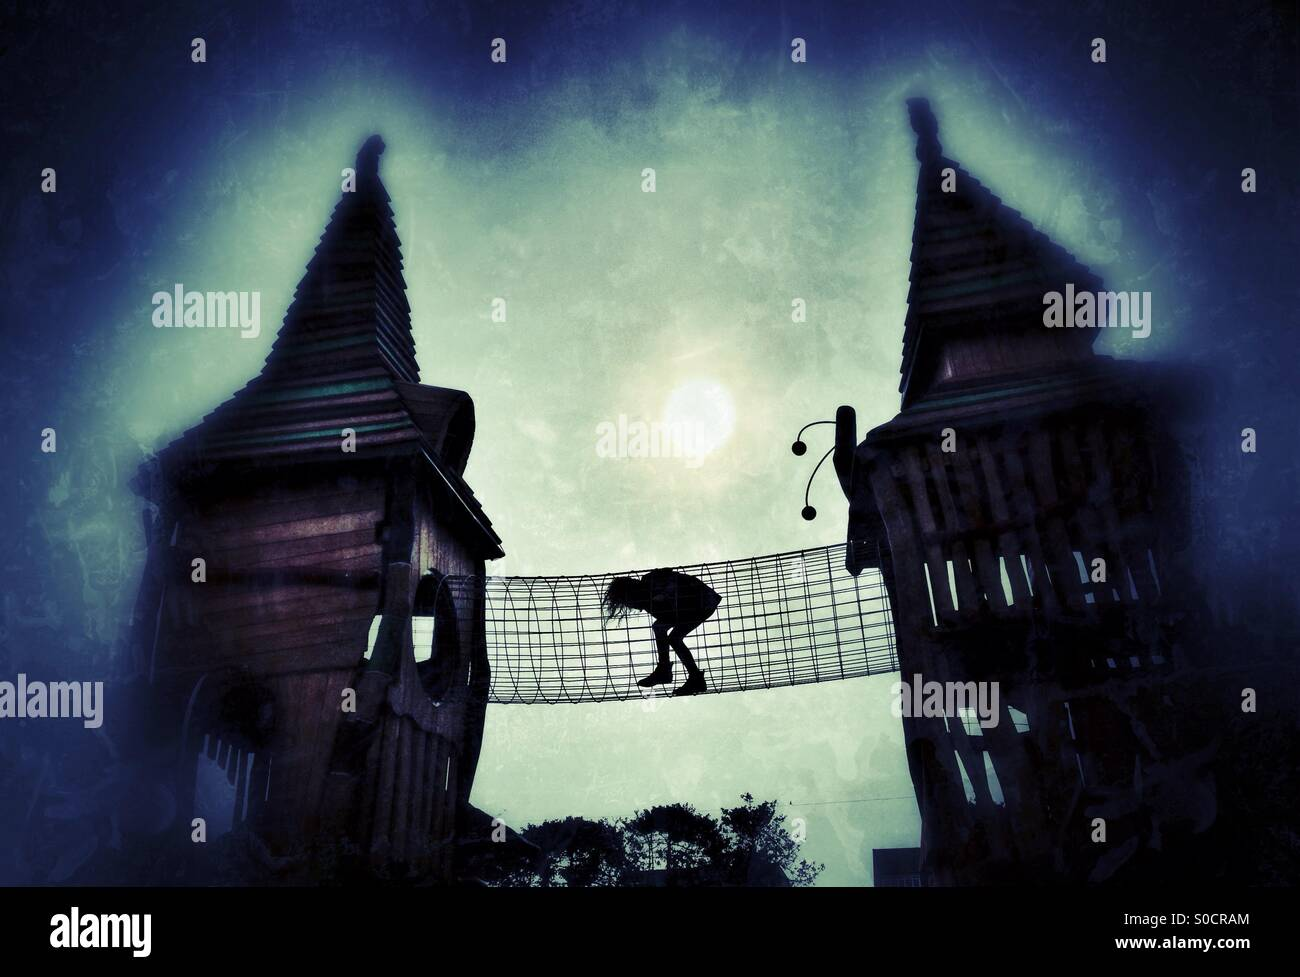 Girl crossing bridge between two fairytale castle towers on playground apparatus - Stock Image